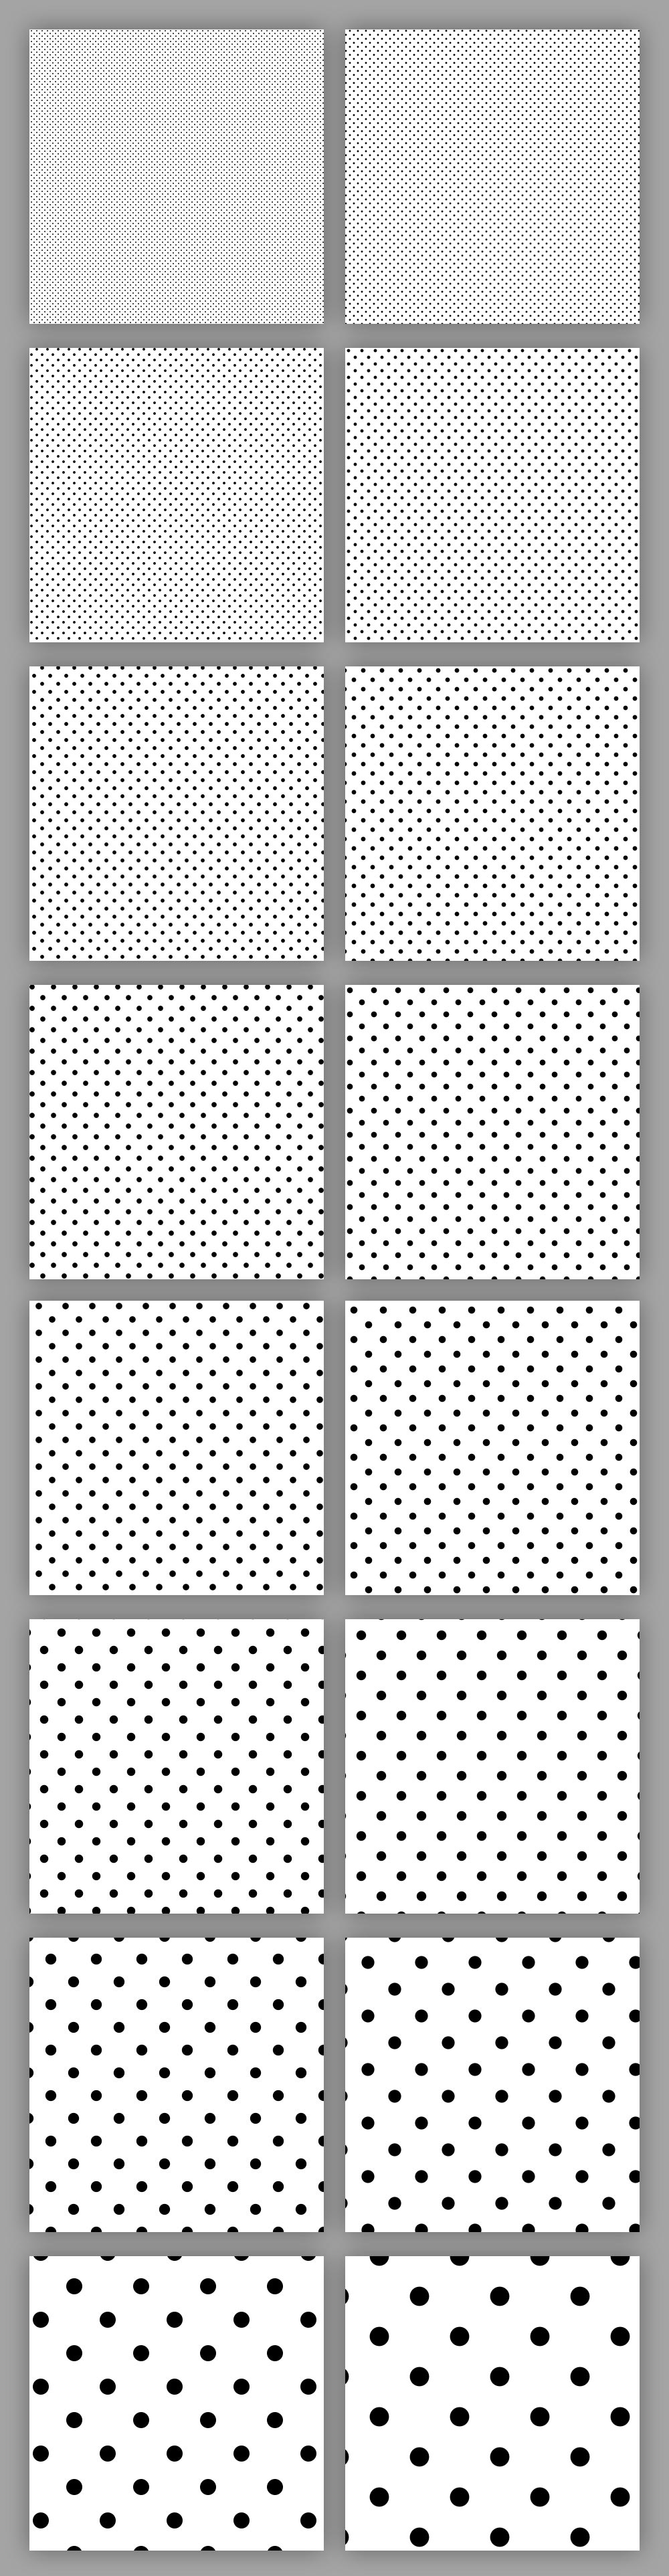 halftone-patterns